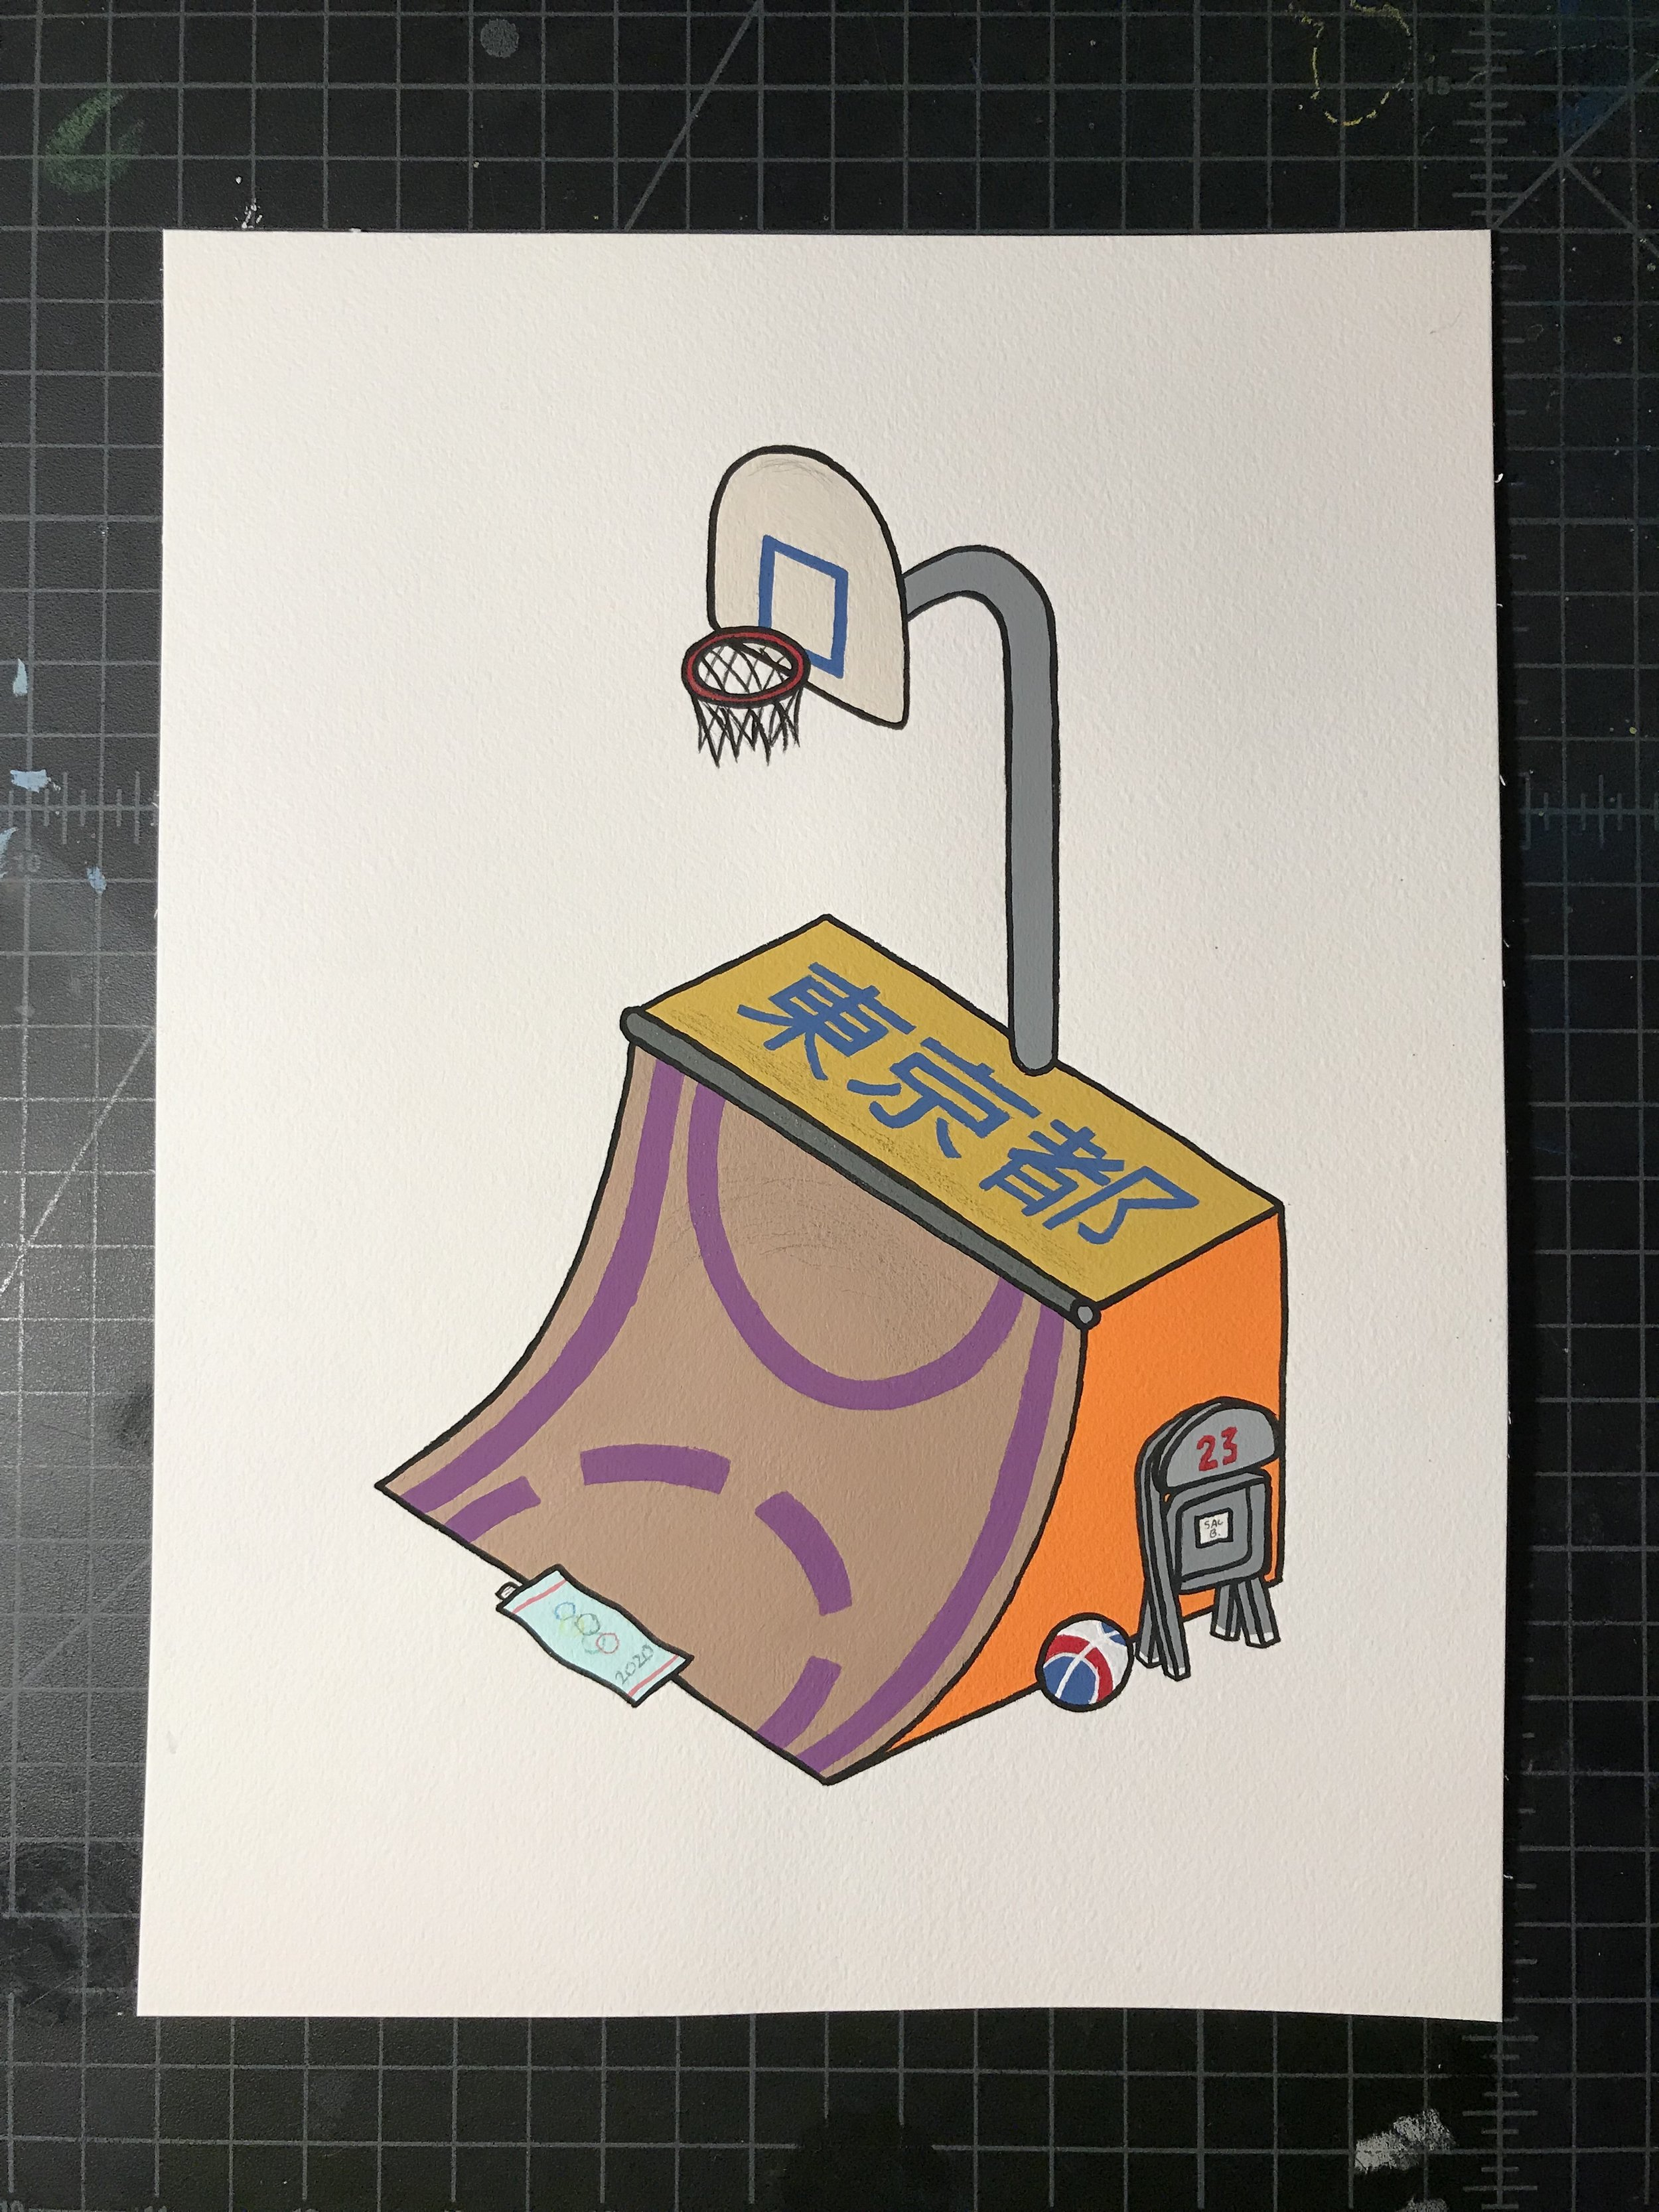 Please upload 2-5 images of your work.